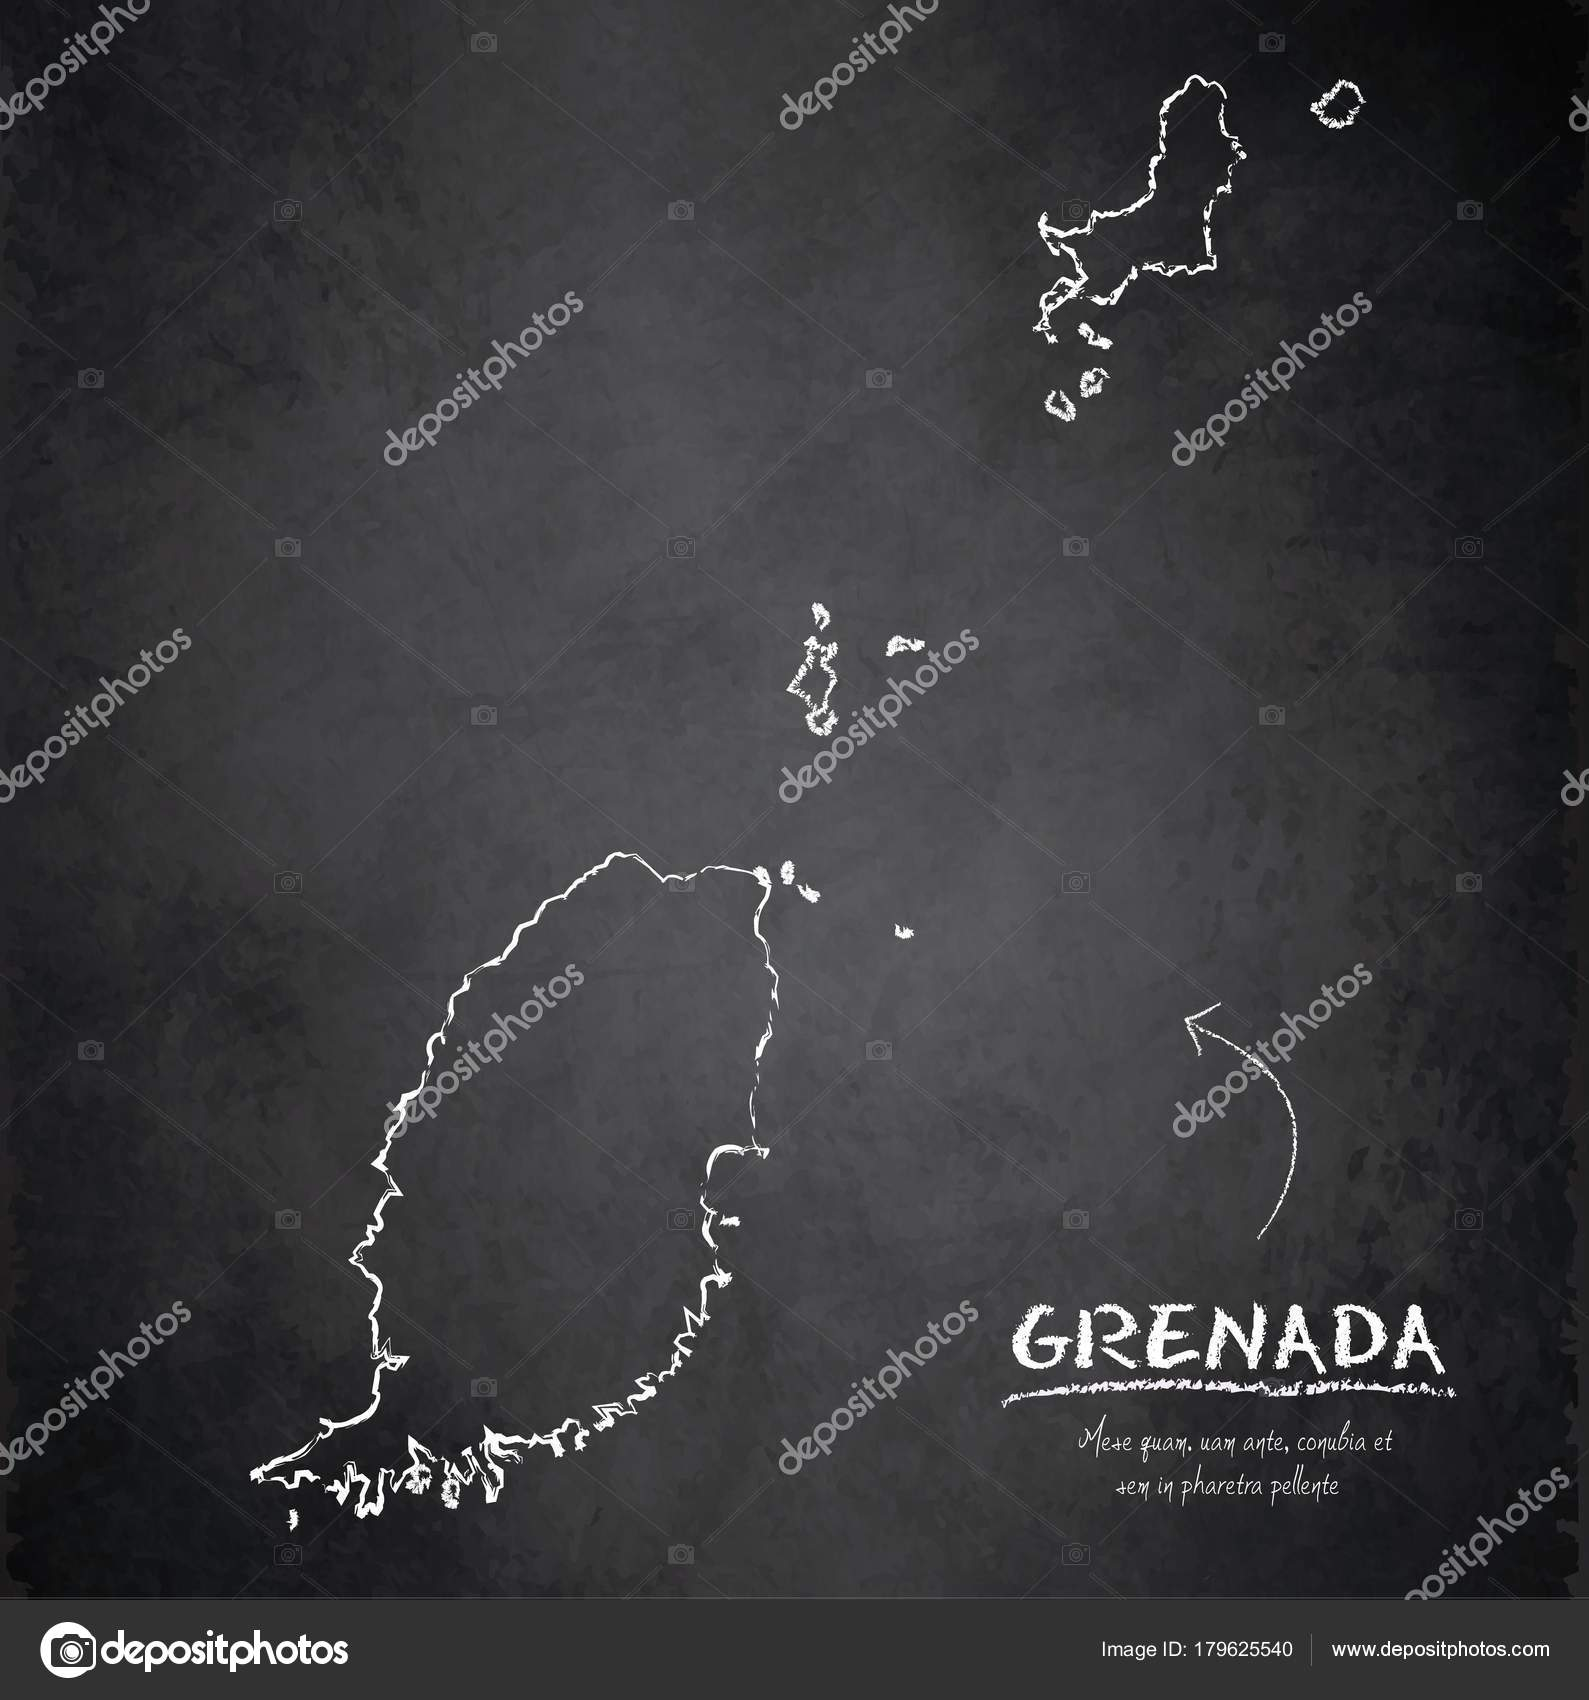 Grenada Map Blackboard Chalkboard Vector Stock Vector Mondih - Grenada map download